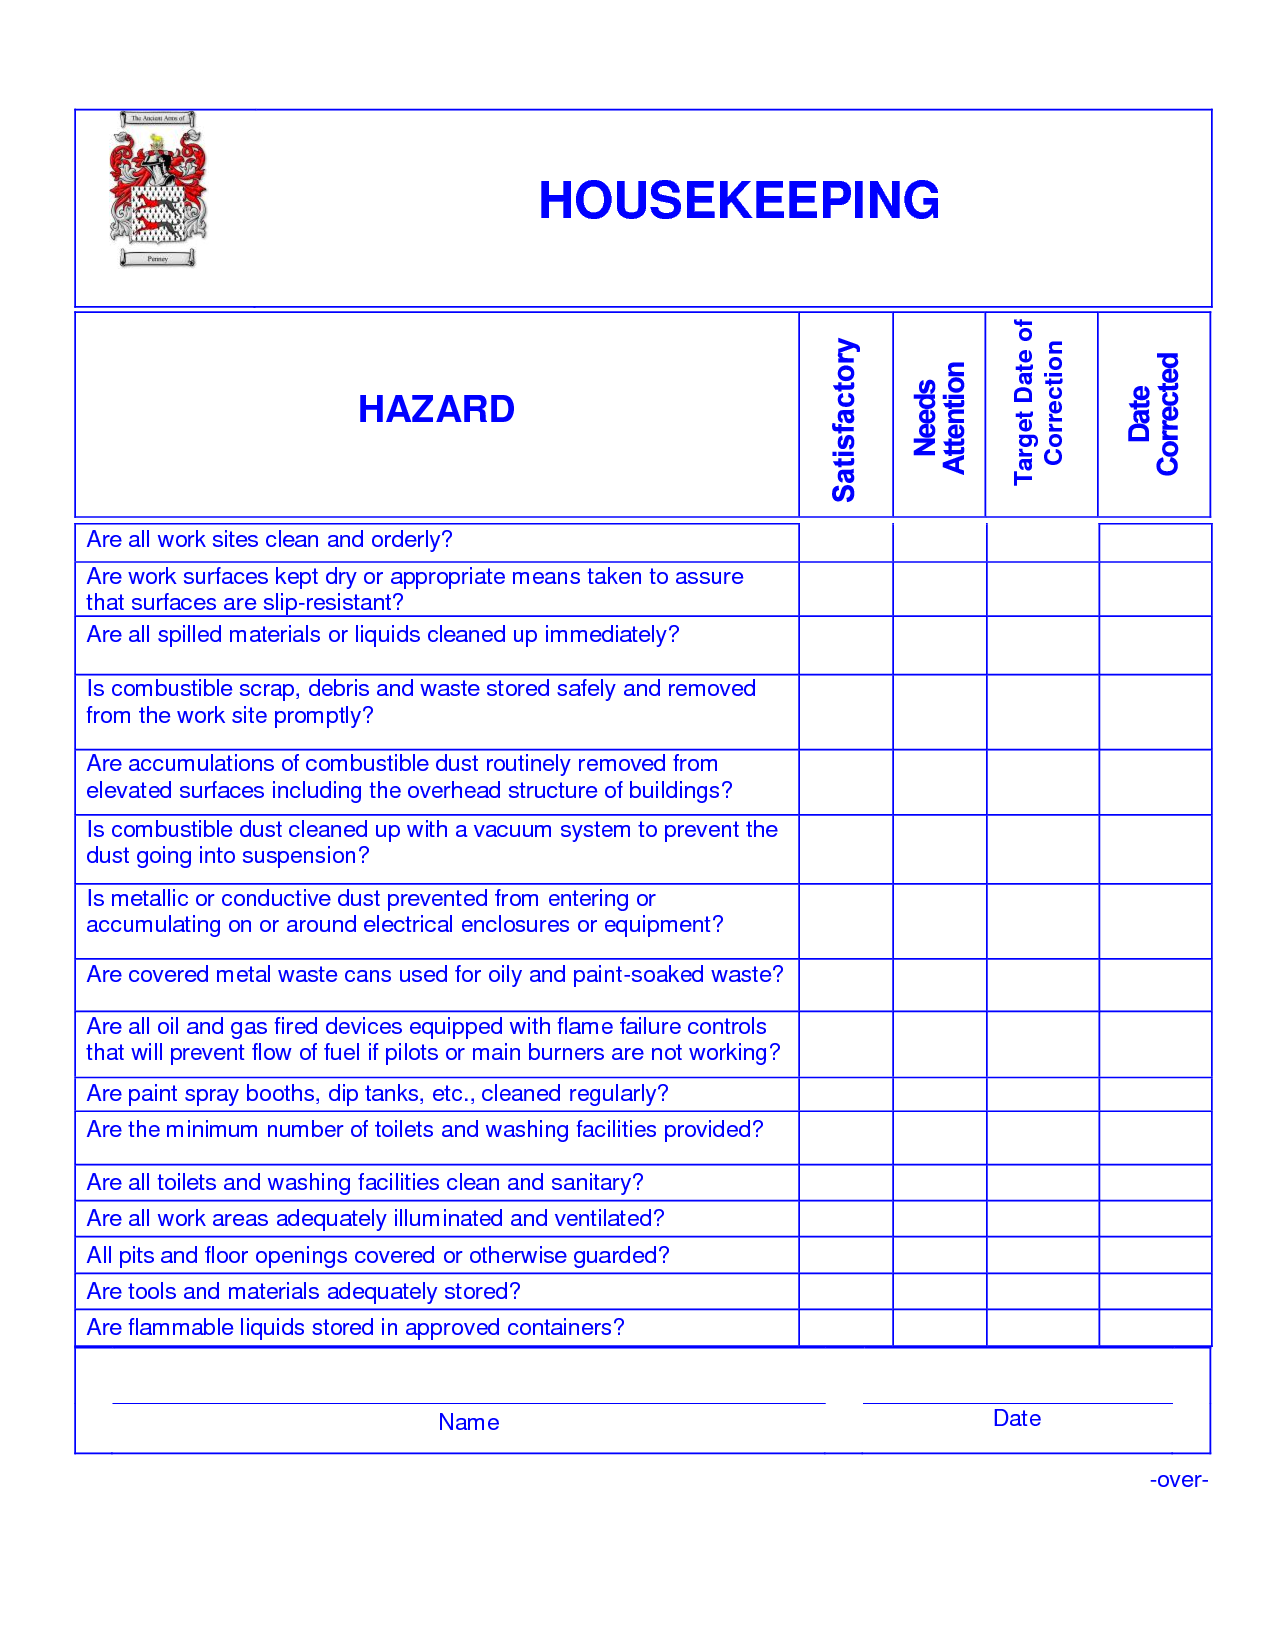 housekeeping checklist template  9 Best Images of Hotel Housekeeping Checklist Printable ..